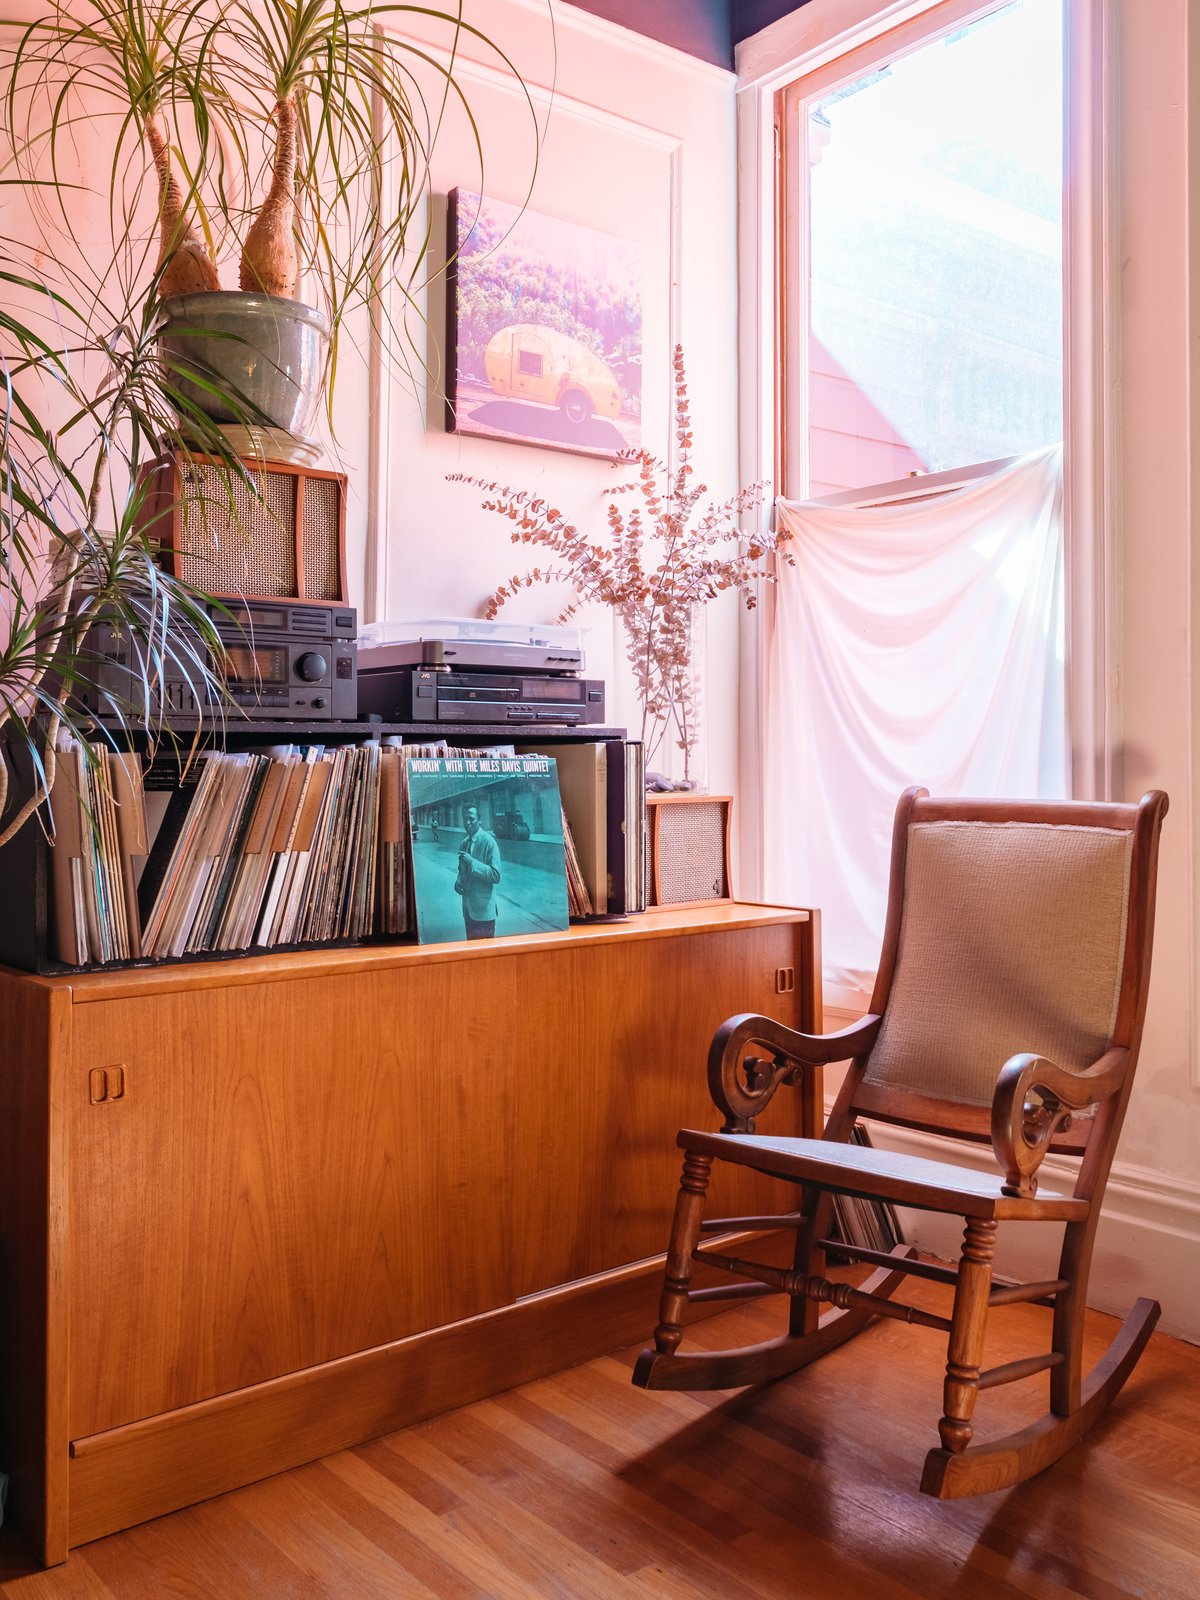 Windy's record collection recalls her days as the owner of Aquarius Records. (Sothear Nuon)